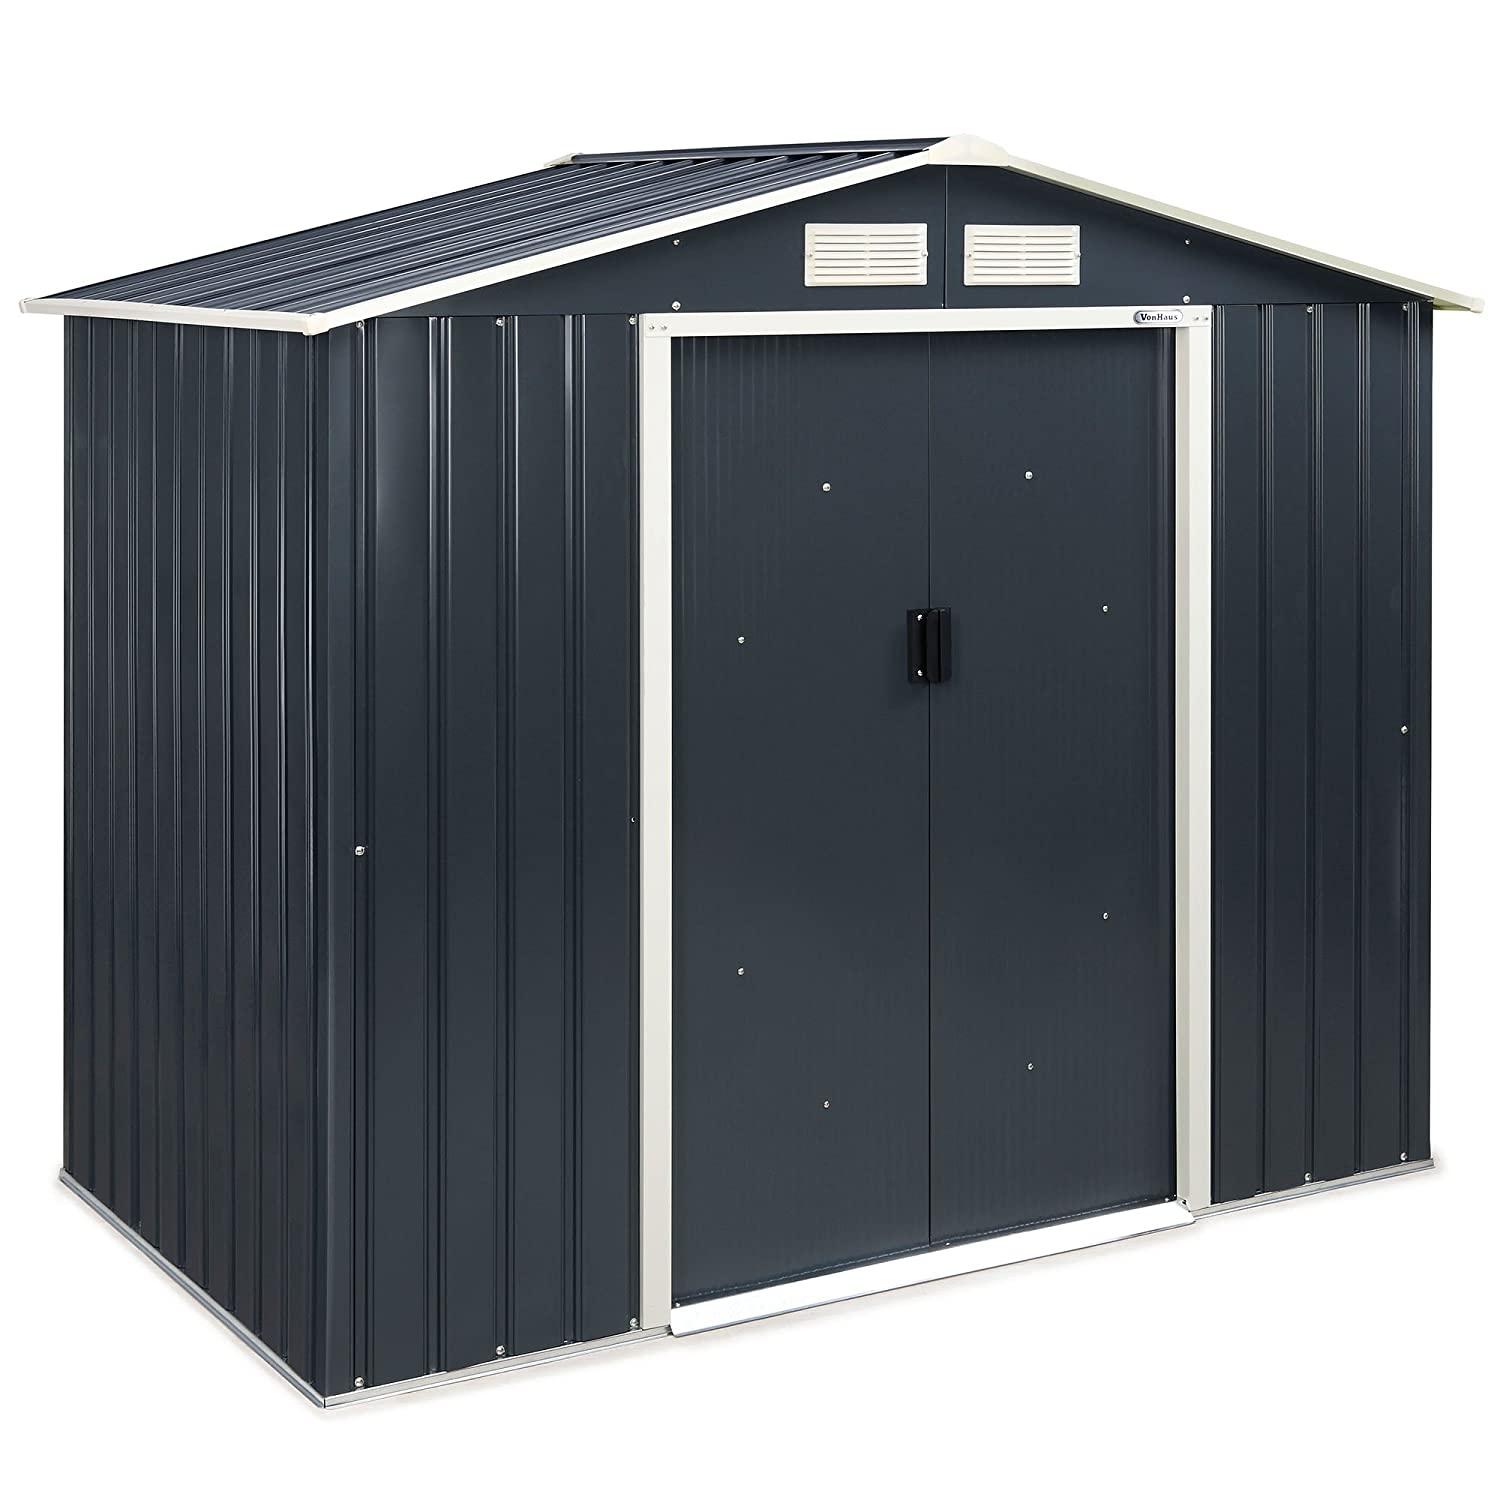 VonHaus Metal Garden Shed   Outdoor Patio Storage Building, Solid Steel  Waterproof Tool/Bike House   7 X 4ft: Amazon.co.uk: Garden U0026 Outdoors